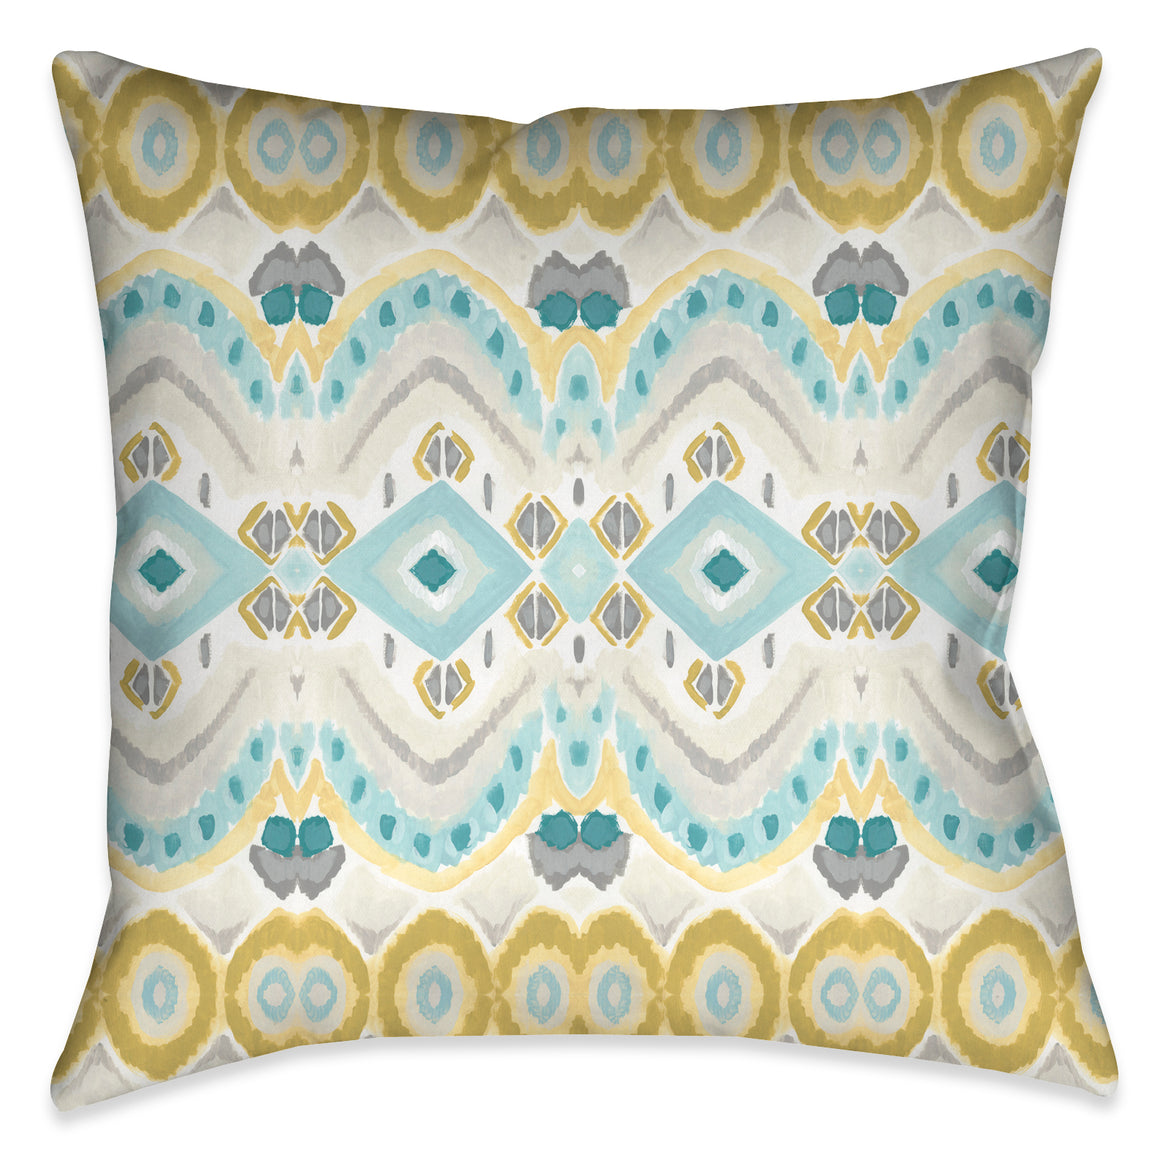 The design motif on this outdoor decorative pillow evokes a unique artistic hand quality exposing a beautiful tile-like impression through painterly strokes.